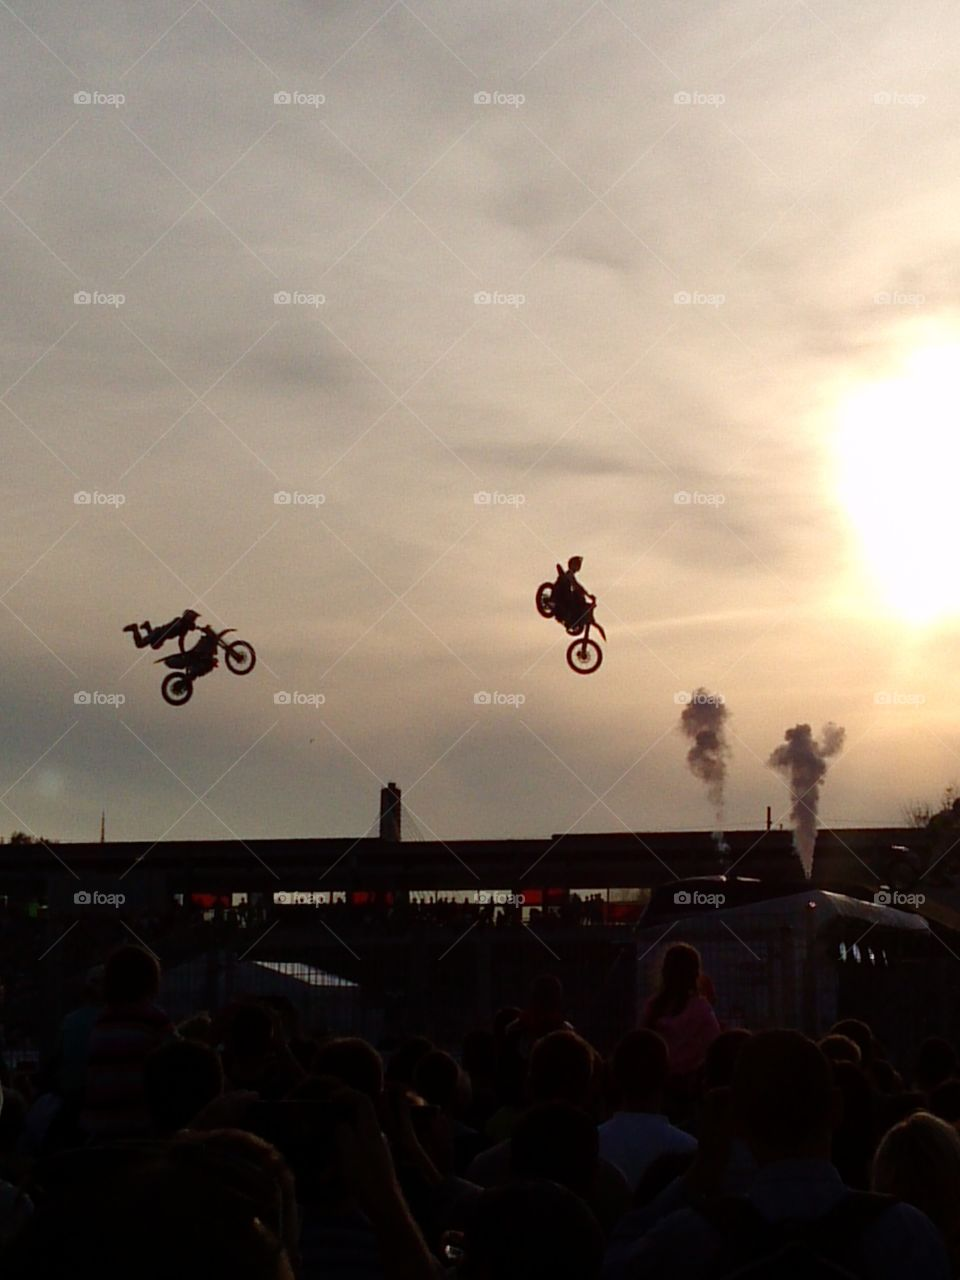 fmx now